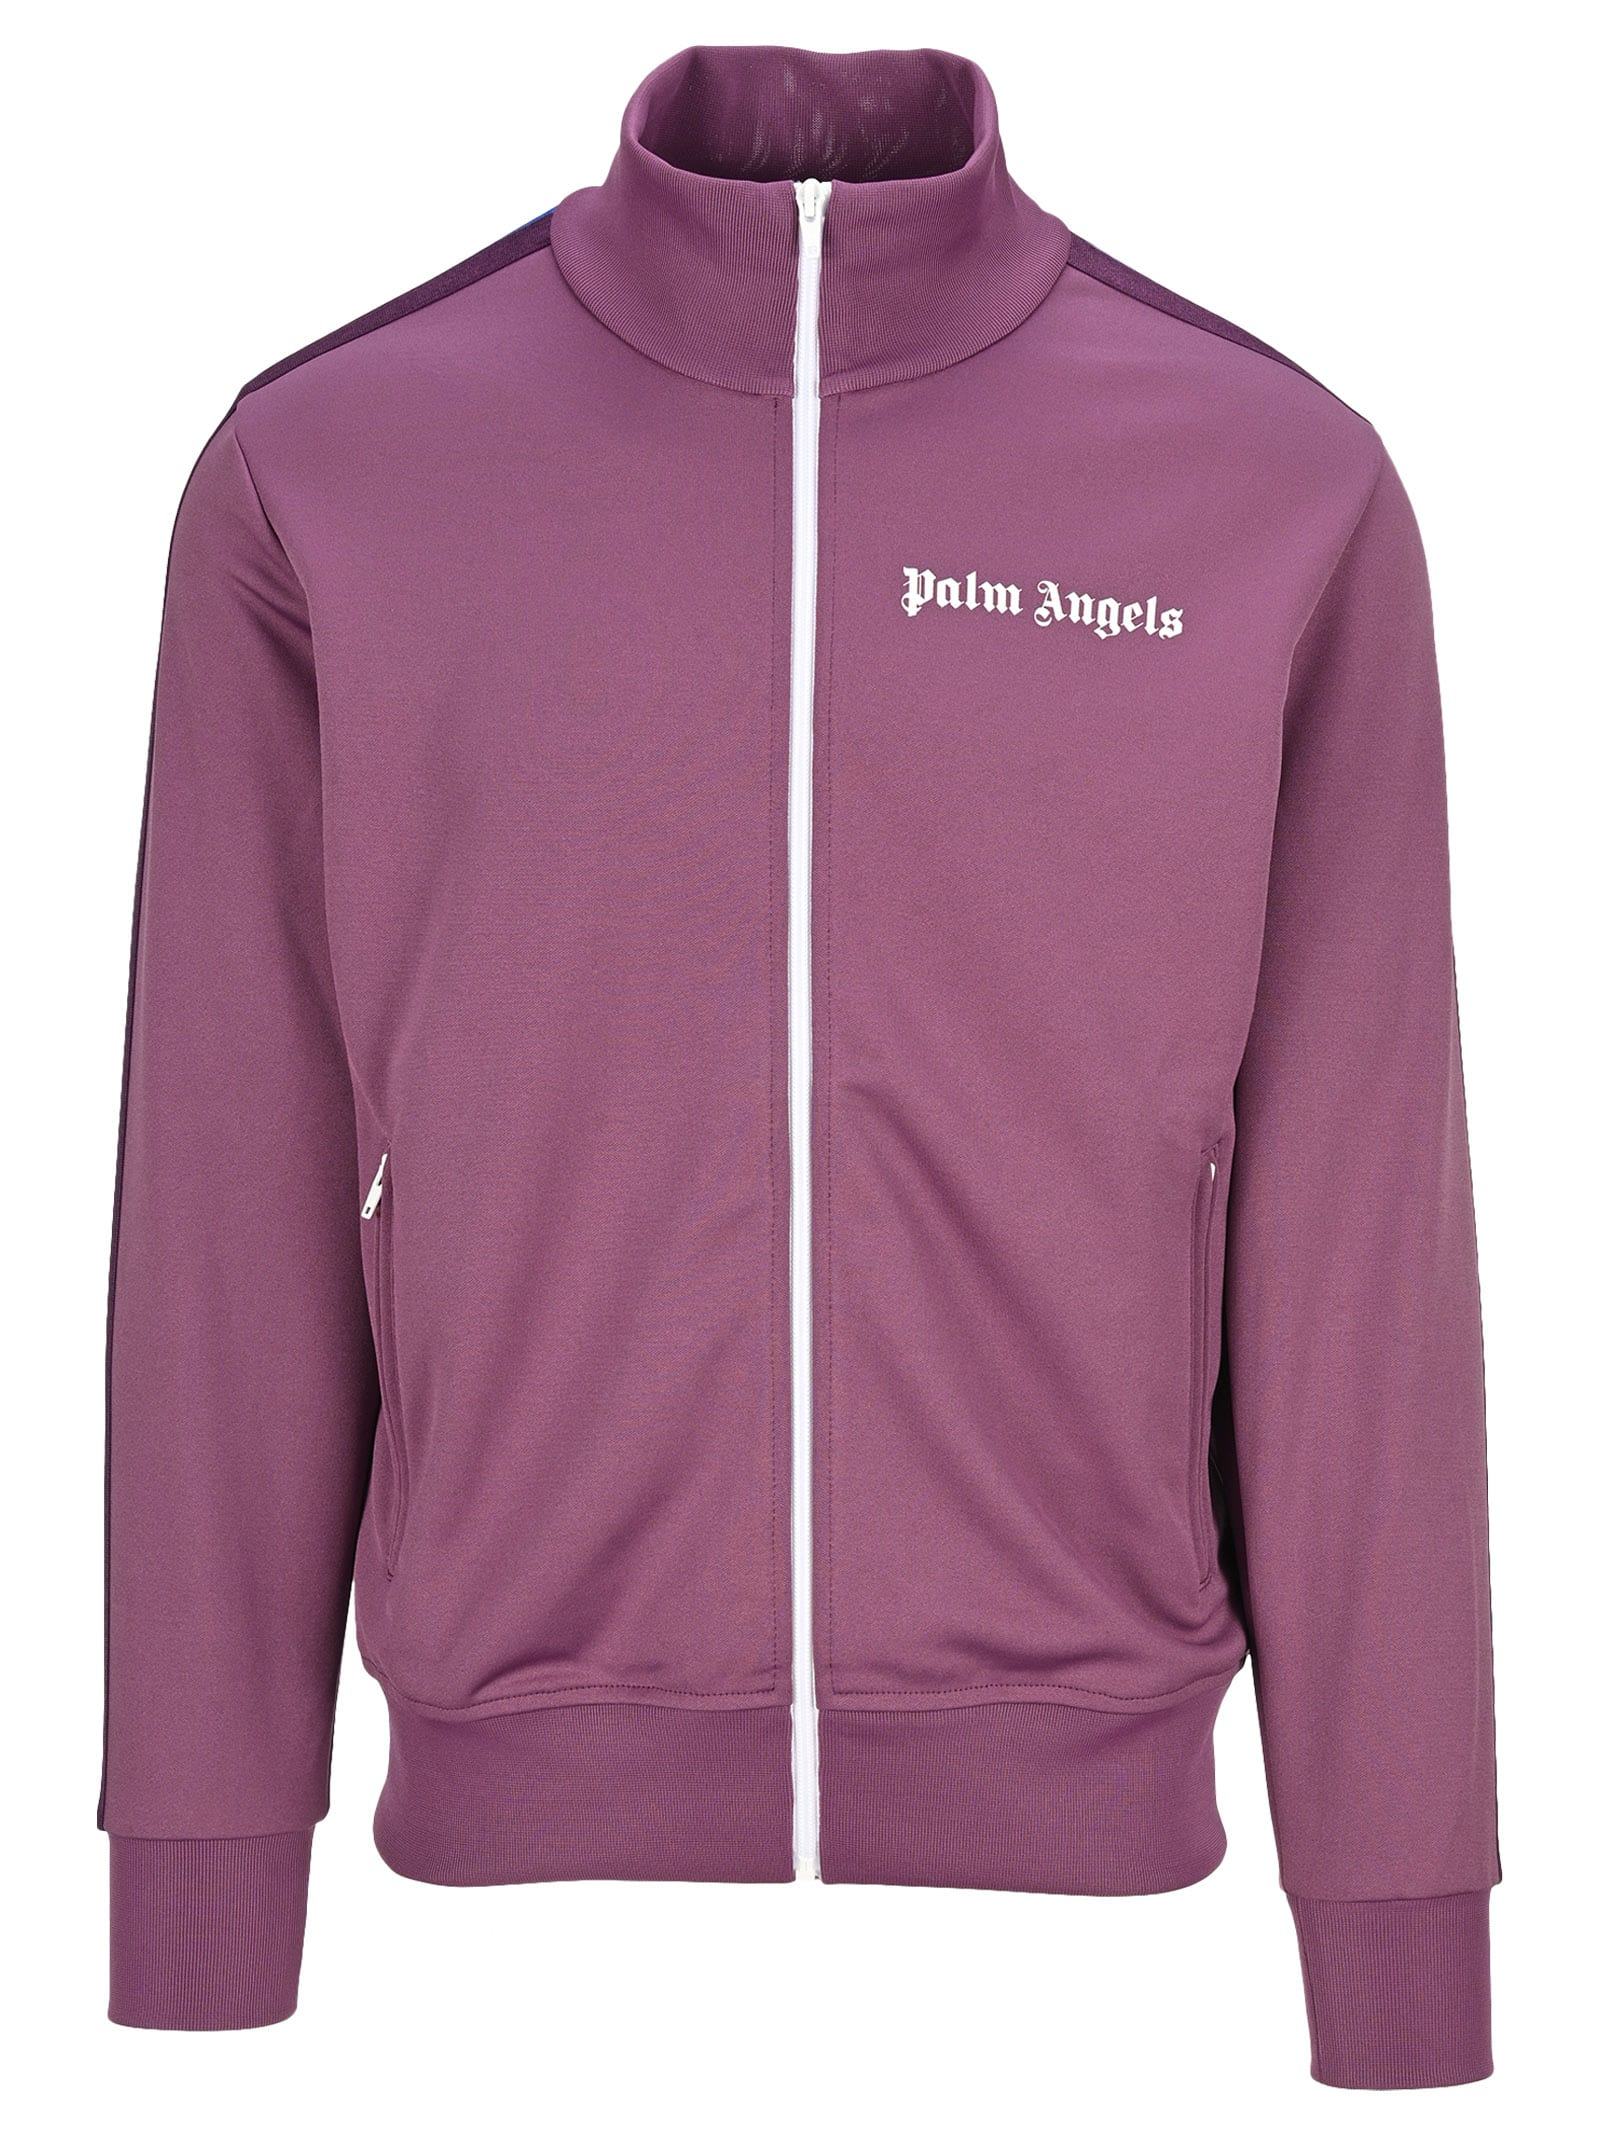 PALM ANGELS TRACK JACKET COLLEGE